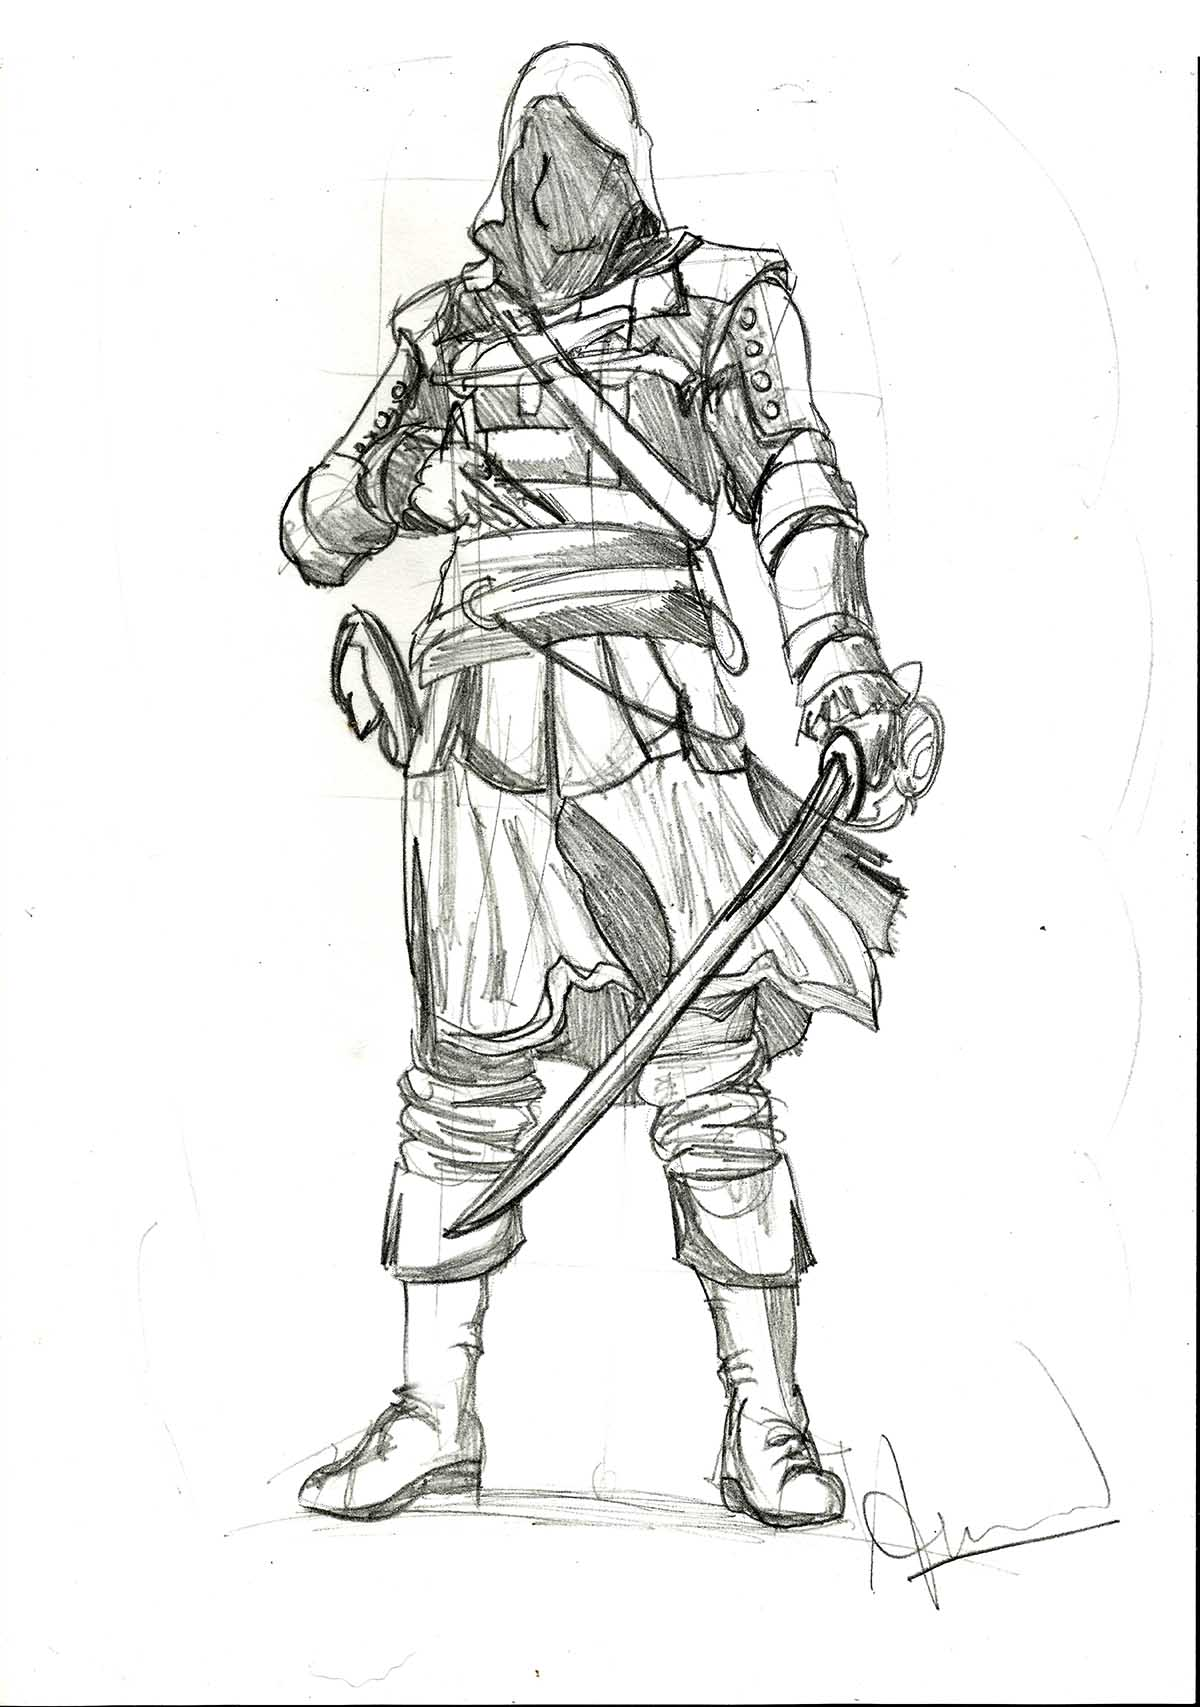 Assassins Creed 4 Edward Kenway Sketch By Aniket210696 On Deviantart